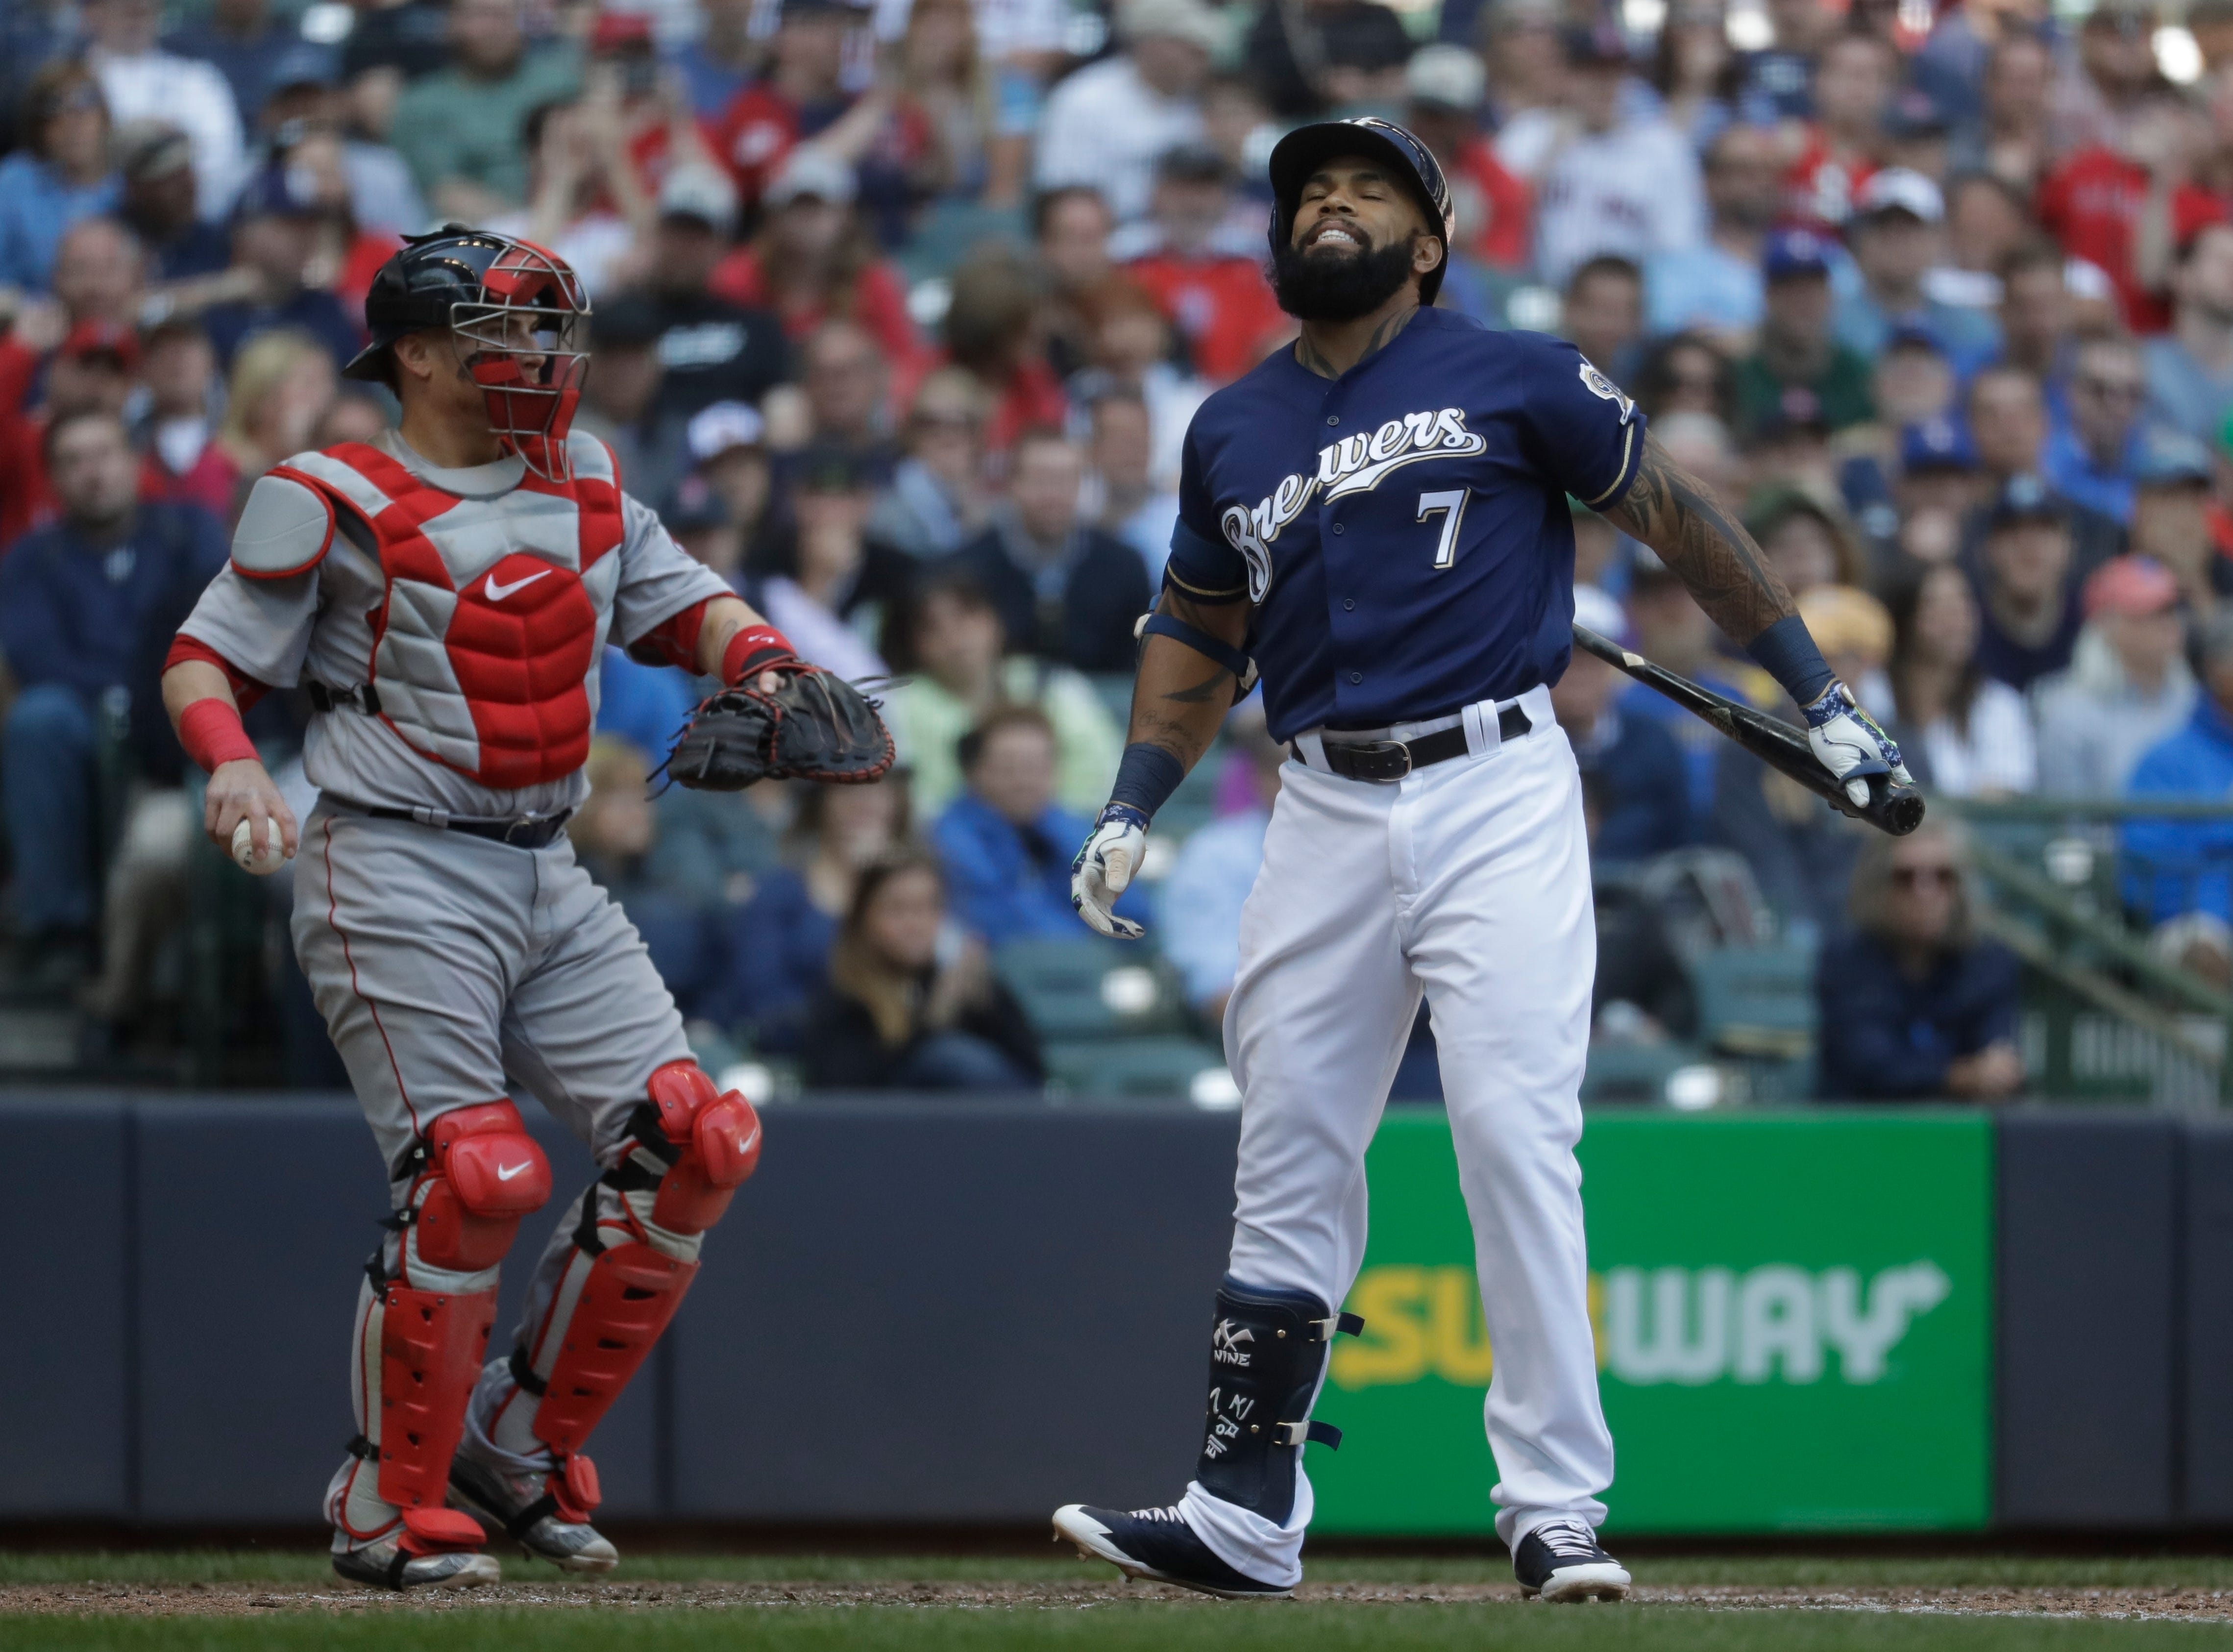 Eric Thames sidelined by strep throat; Travis Shaw still dealing with sore finger